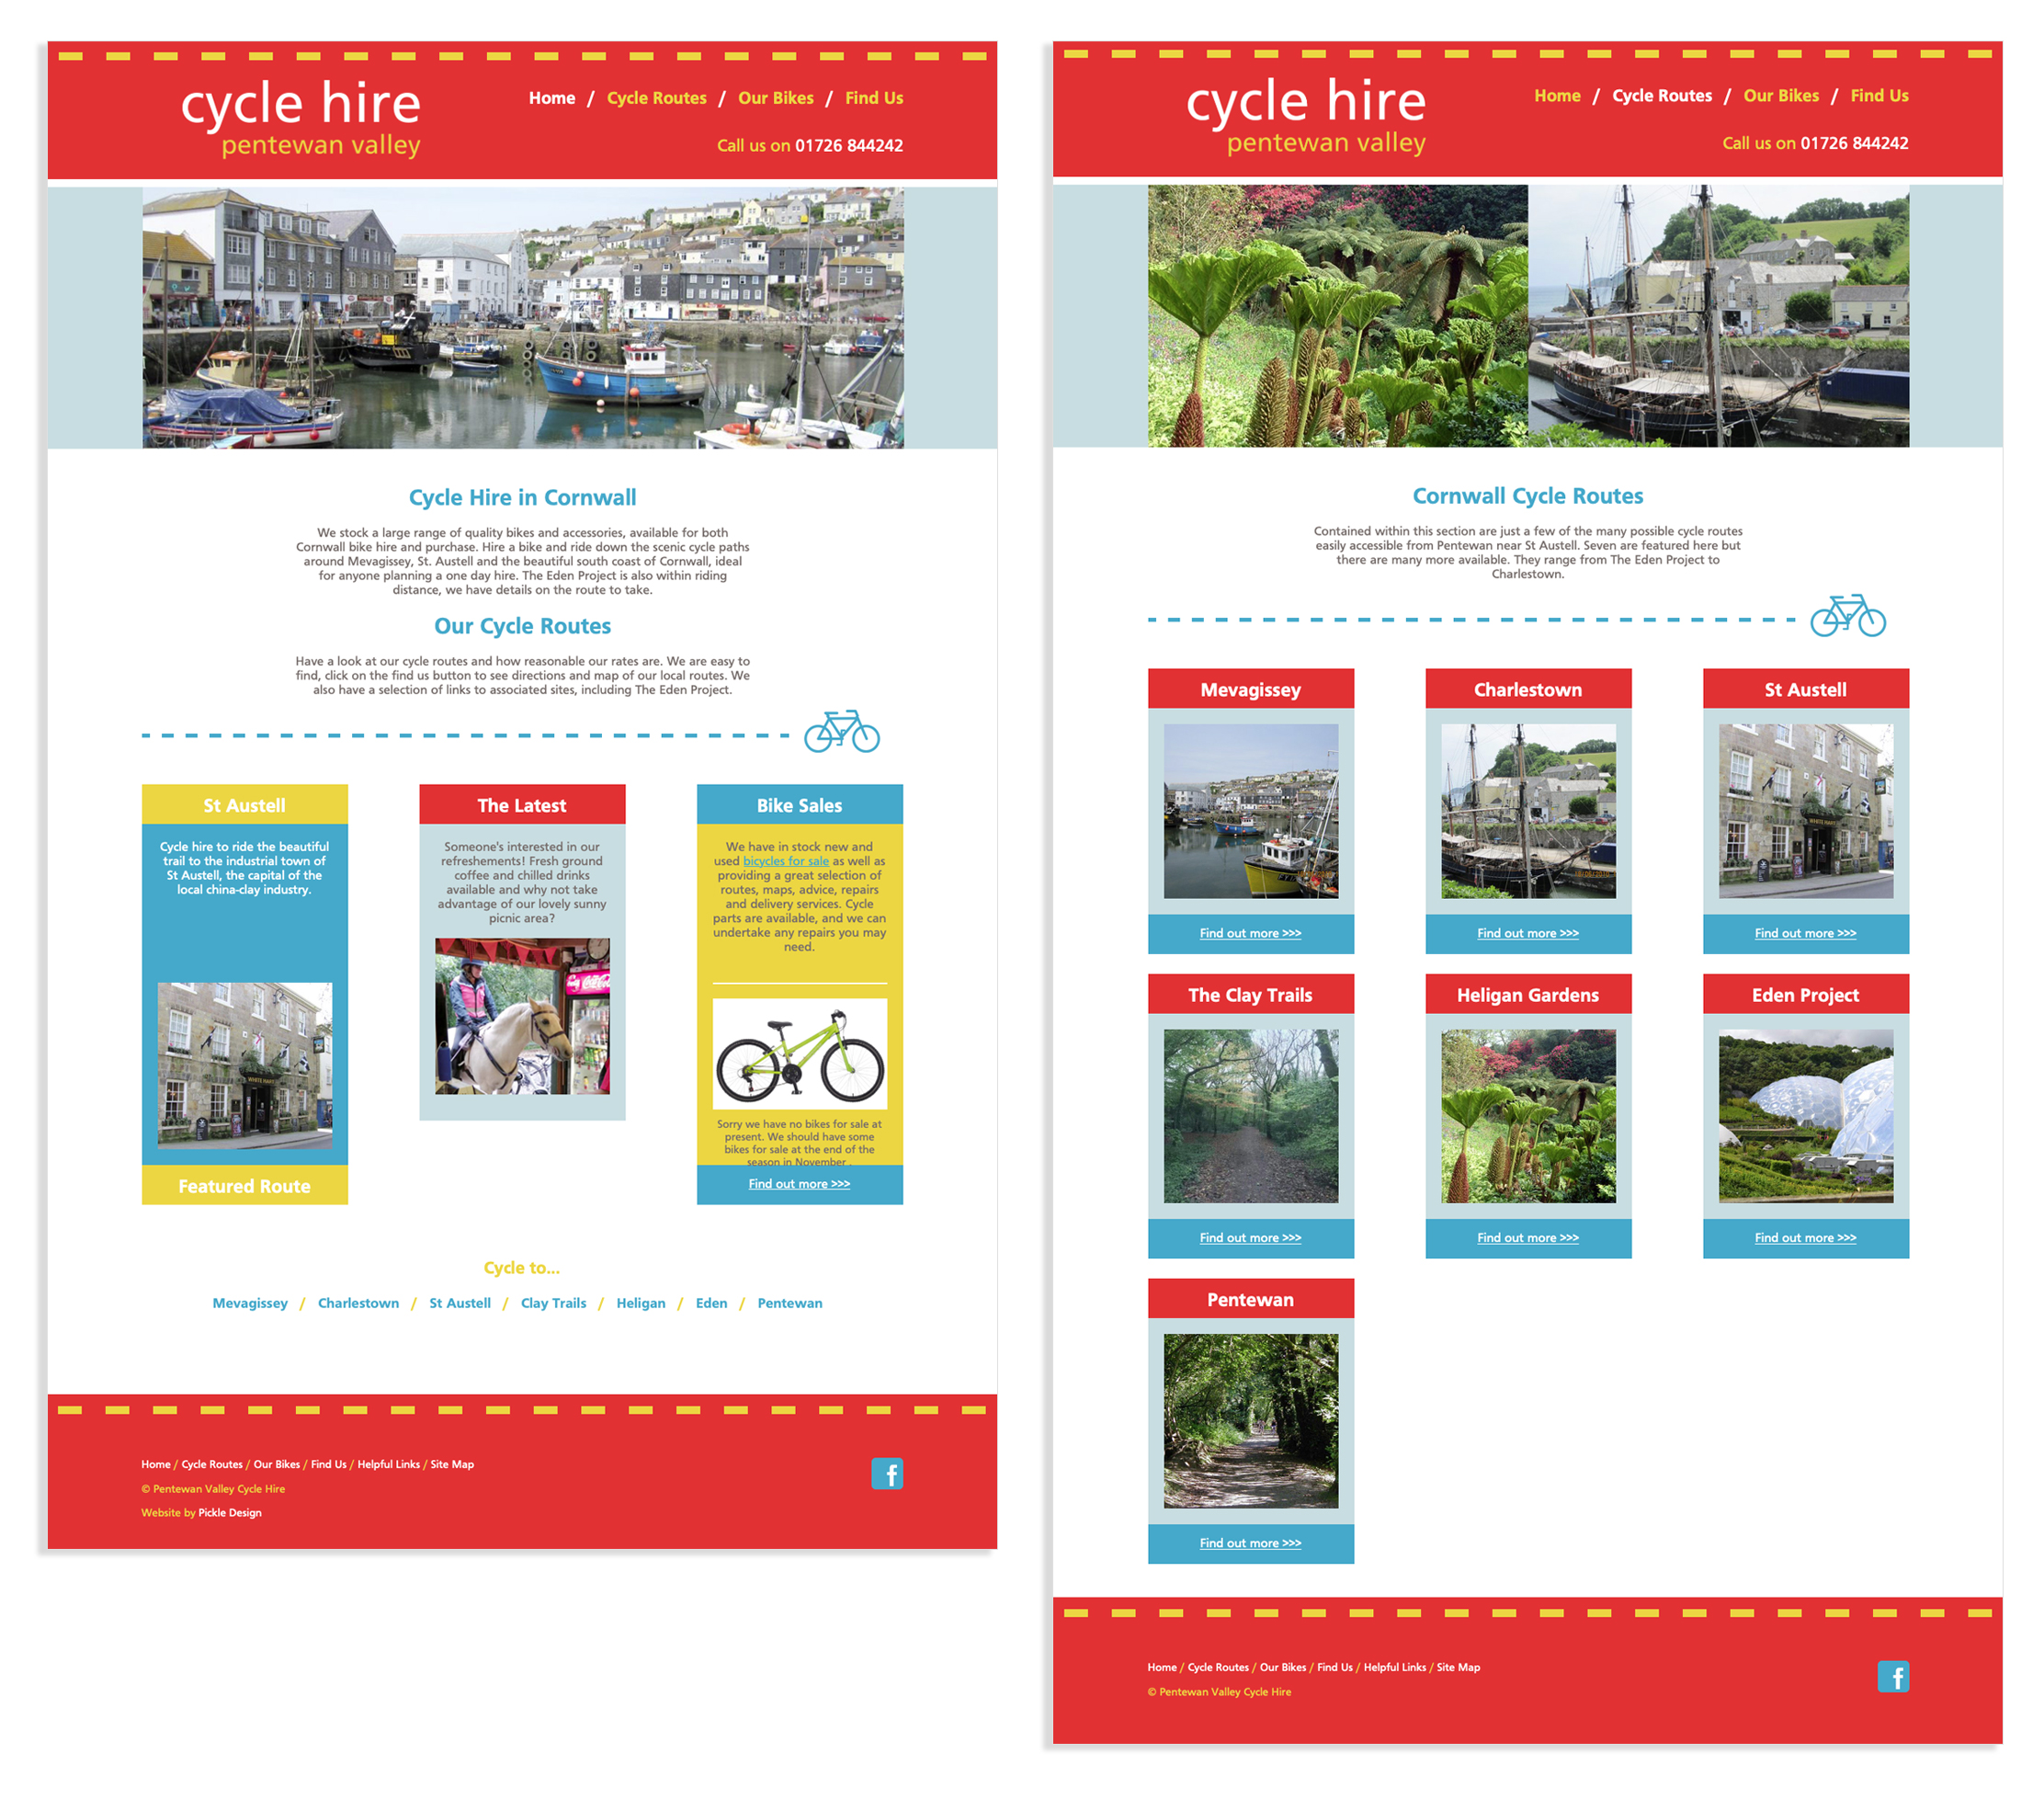 Pentewan Valley Cycle Hire routes and home page